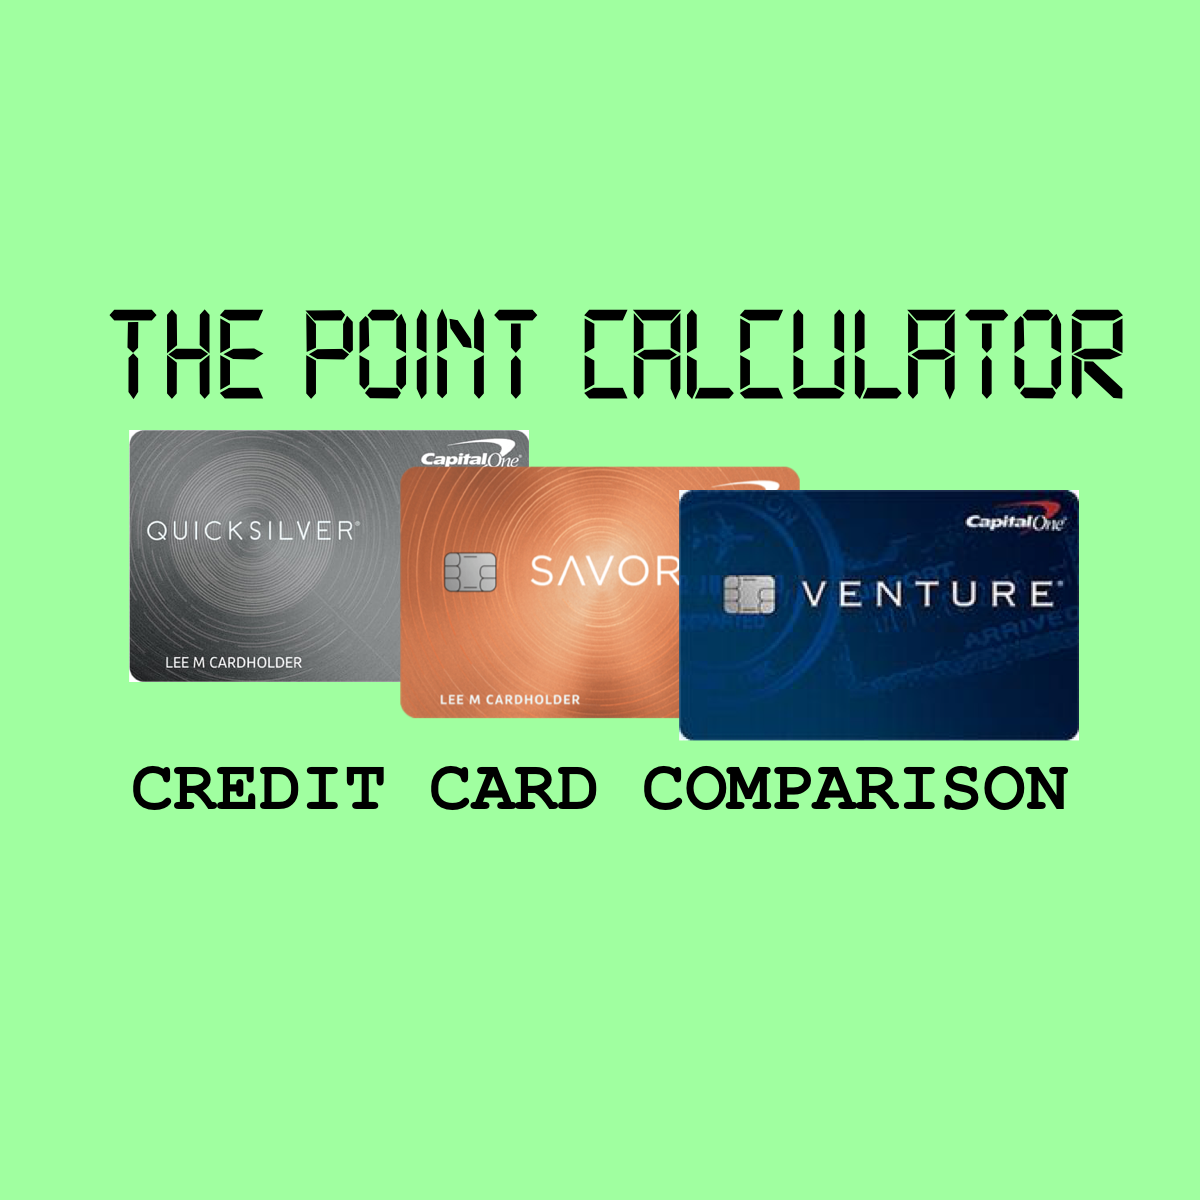 41ee908769c857ed8fbad96ee1f8f783 - How To Get Cashback On Capital One Credit Card